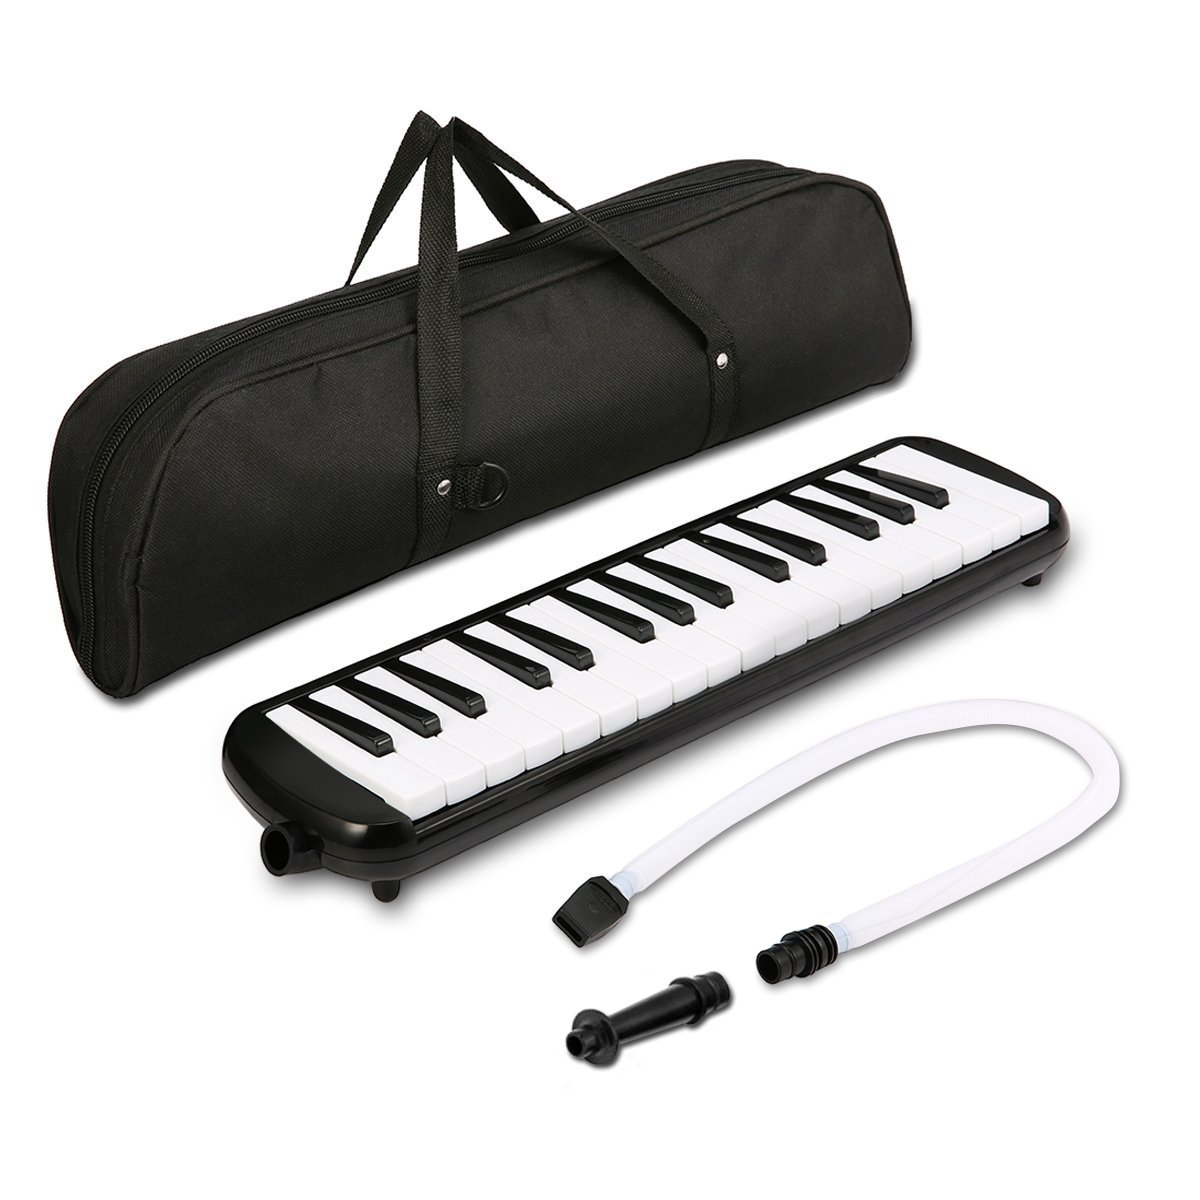 Melodica instrument - NASUM 37 Key Piano Style Melodica,Melodica keyboard Suitable for Teaching and Playing,with Carrying Case (Black) (37)